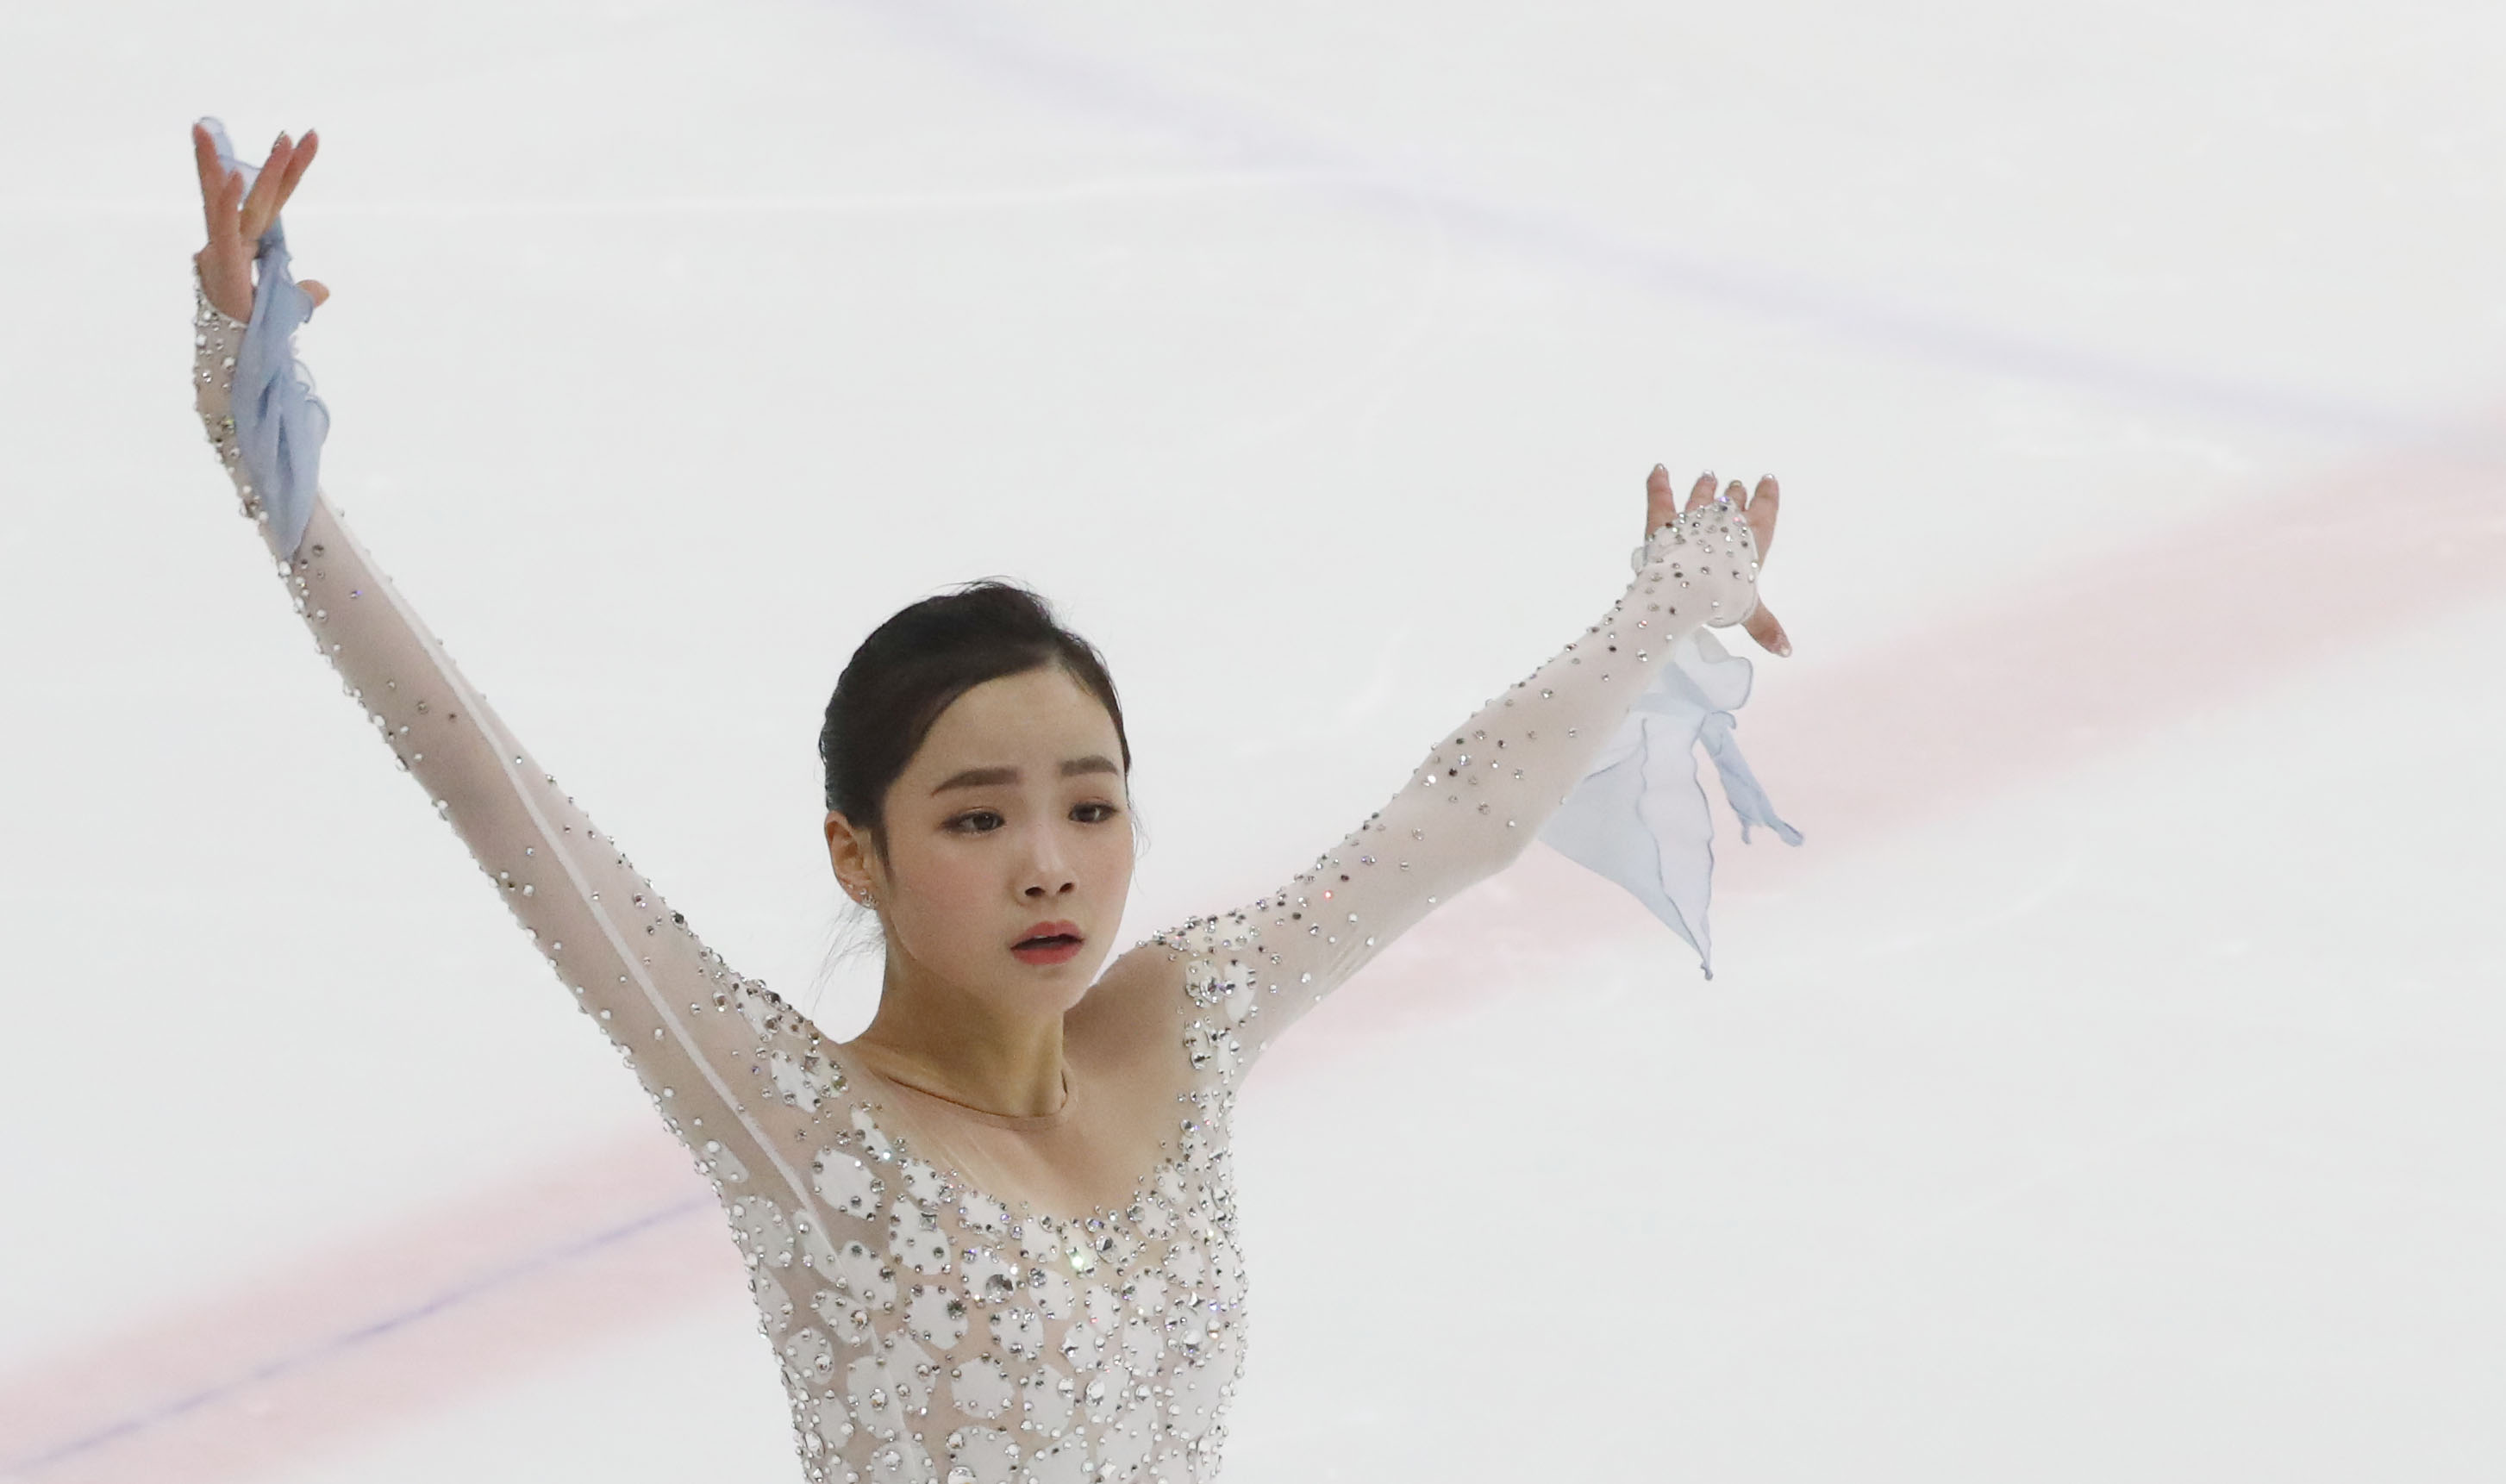 South Korean figure skater Lim Eun-soo <Photo: Yonhap News>